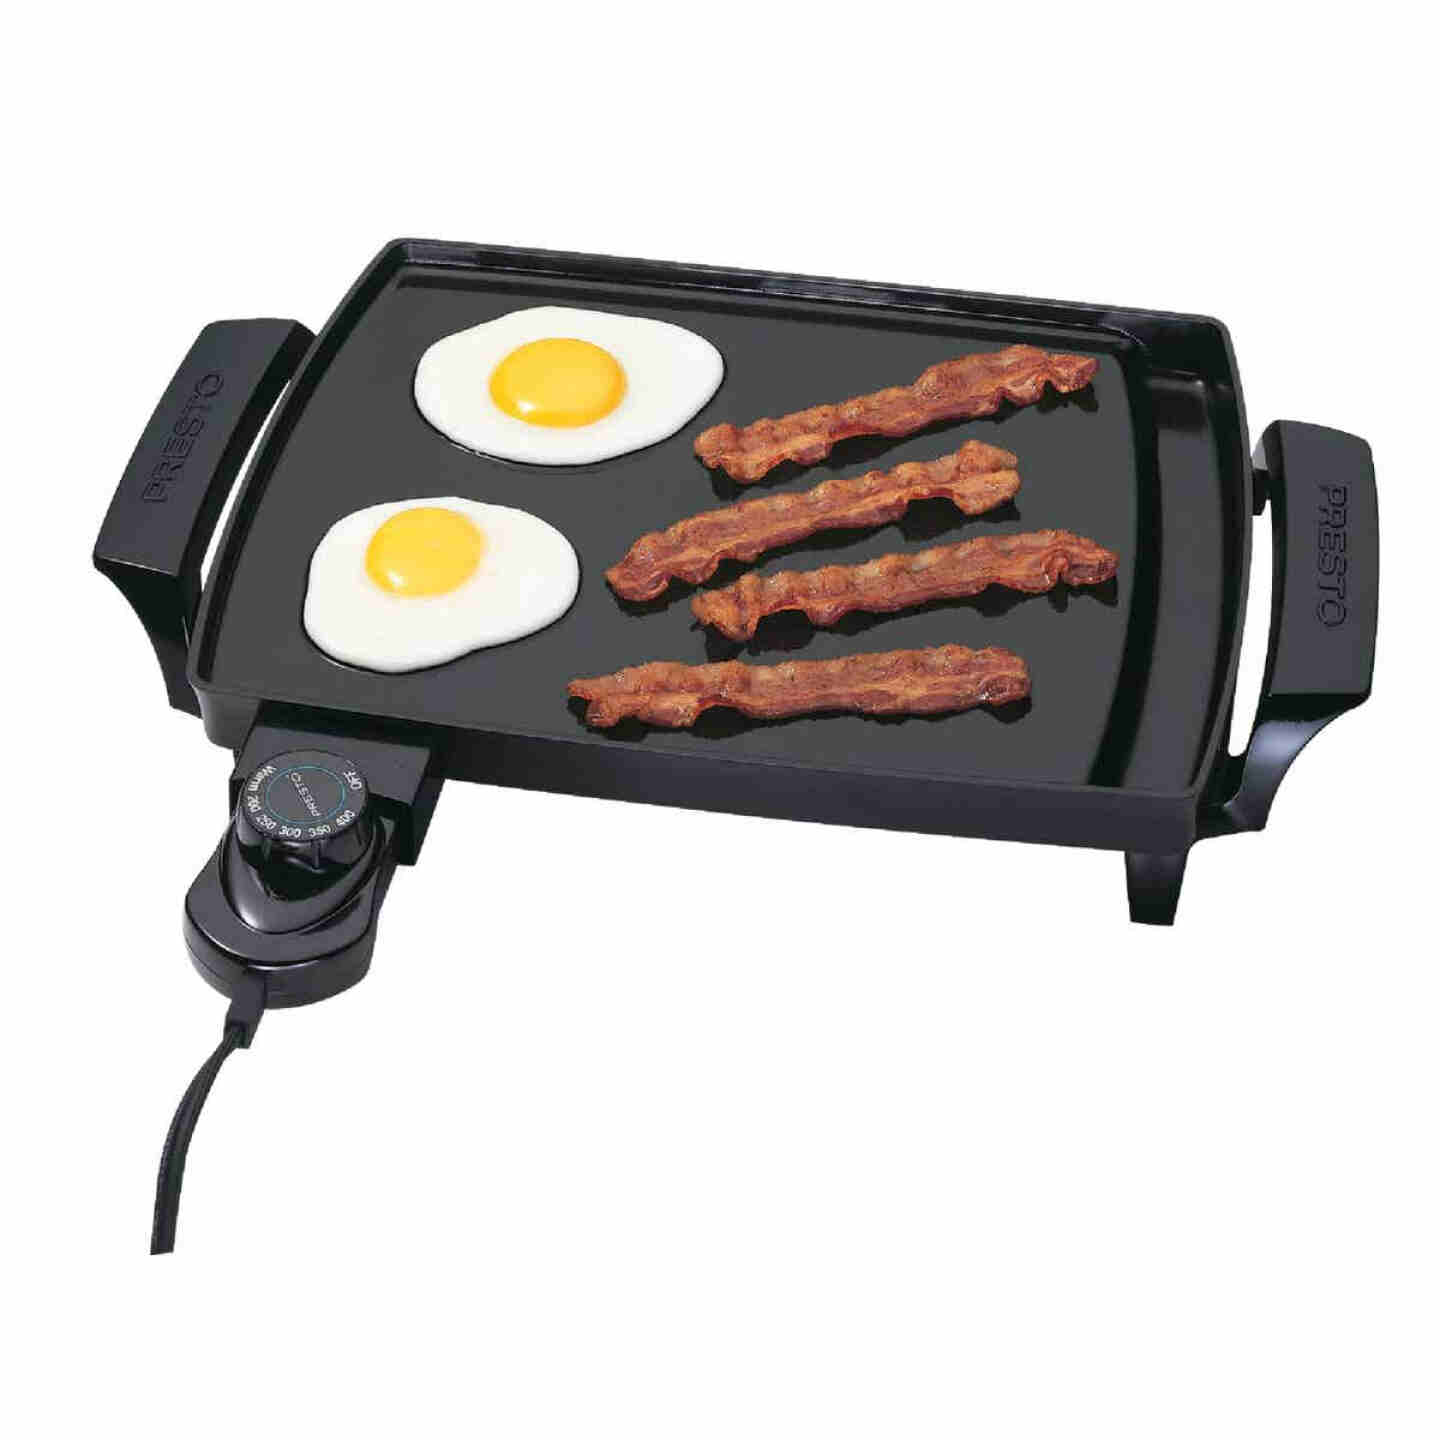 Presto Liddle Griddle Mini Electric Griddle Image 2